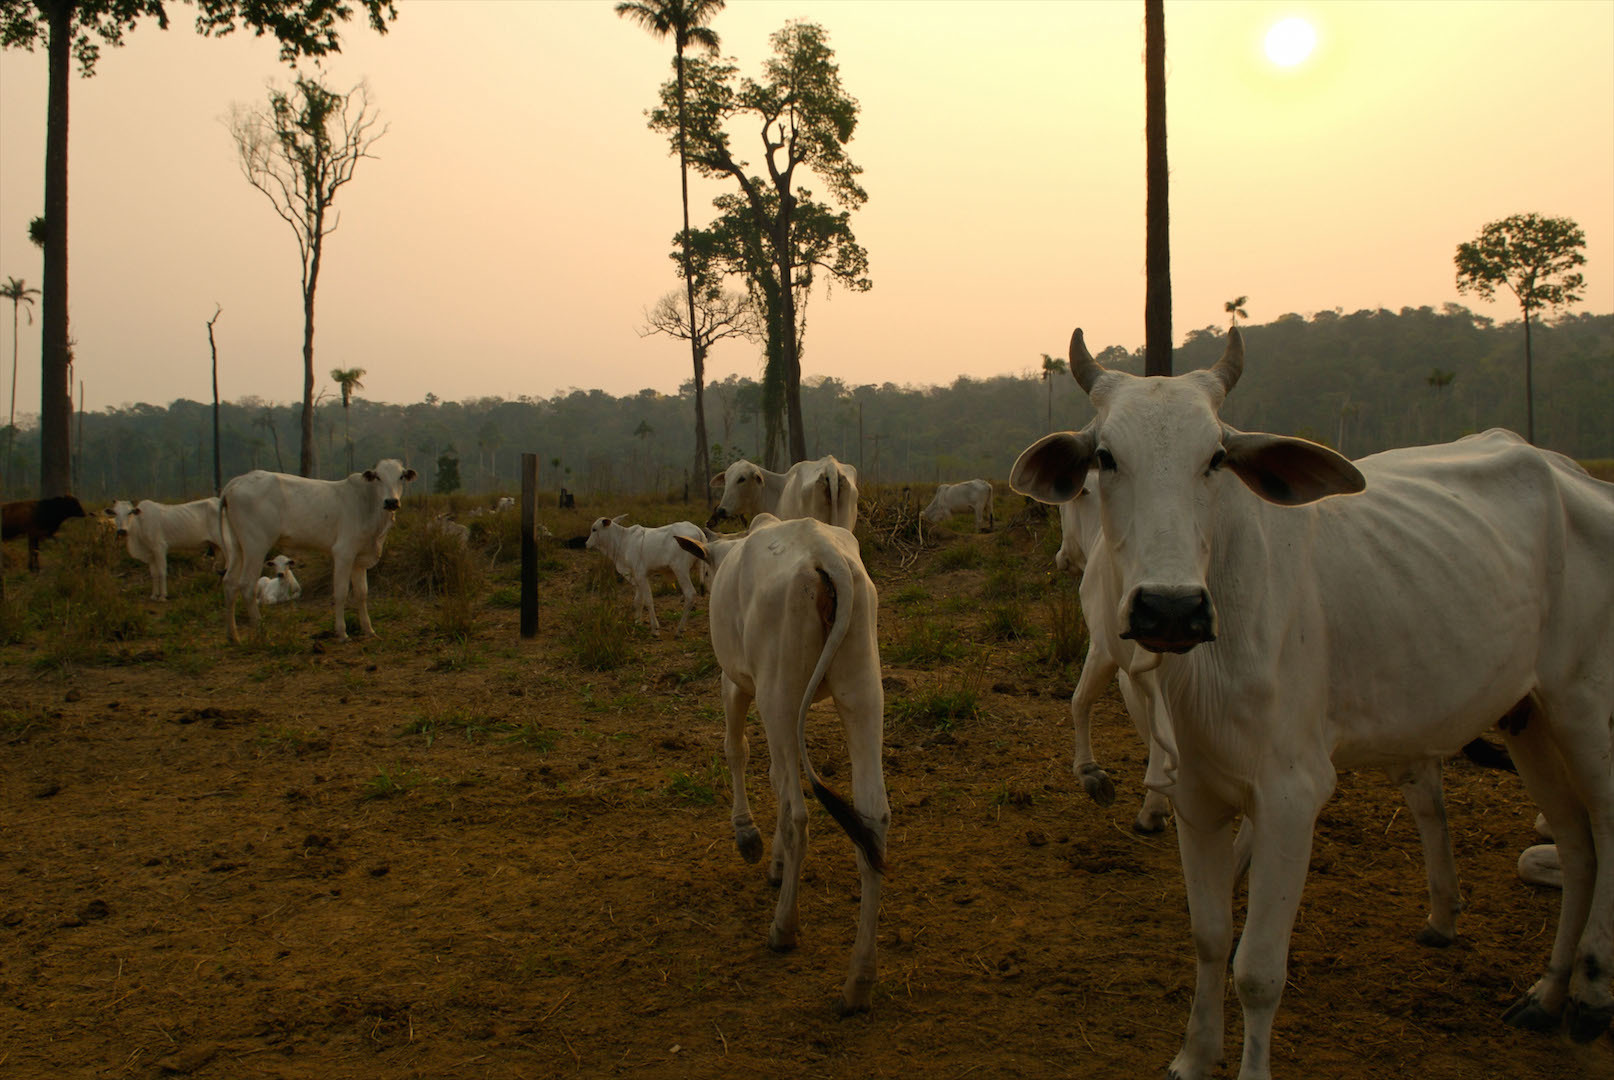 Cattle ranching on Amazon frontier